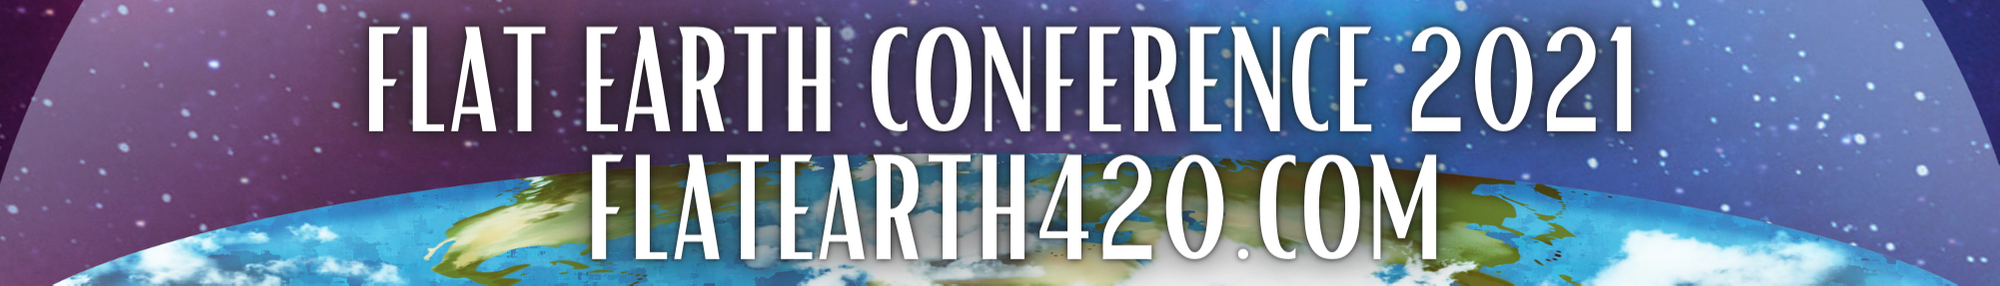 FLAT EARTH CONFERENCE PROGRAM  4/20/21